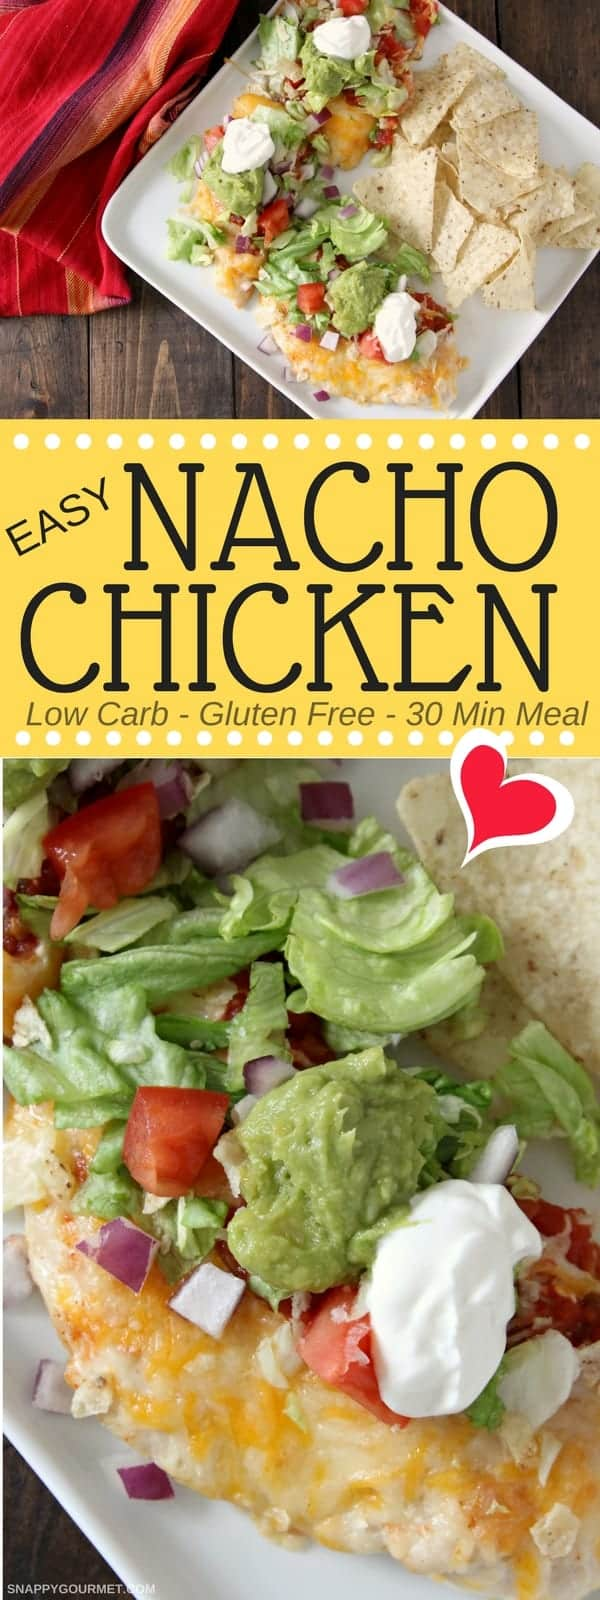 Easy Nacho Chicken - low carb baked chicken recipe. SnappyGourmet.com